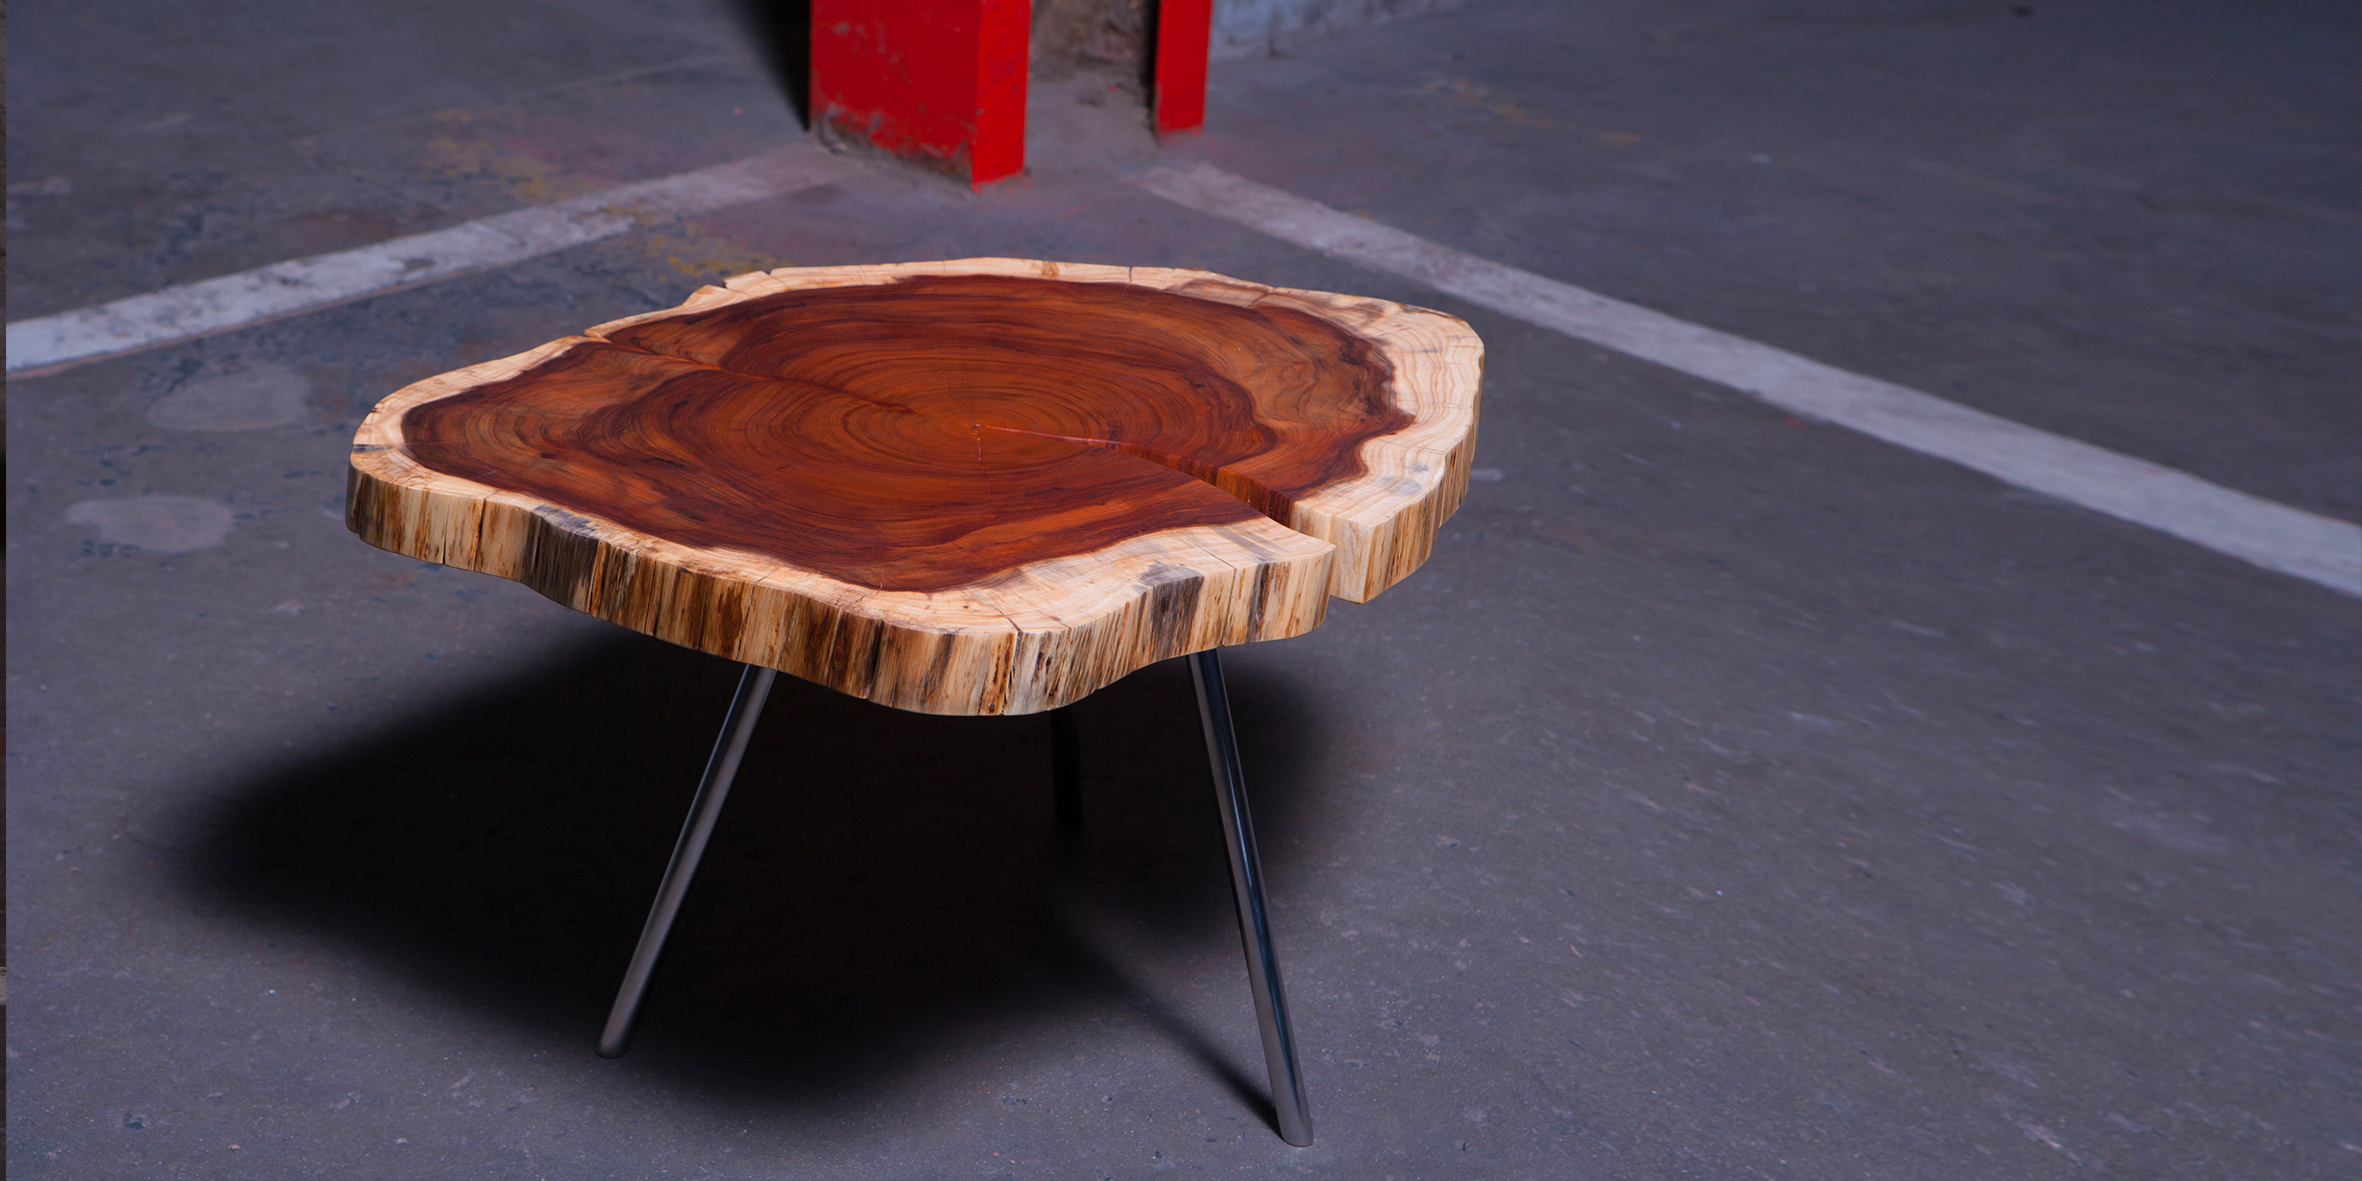 fbs - chop table, 550 dia x 450 h, brushed stinaless steel with blackwood top REV 1